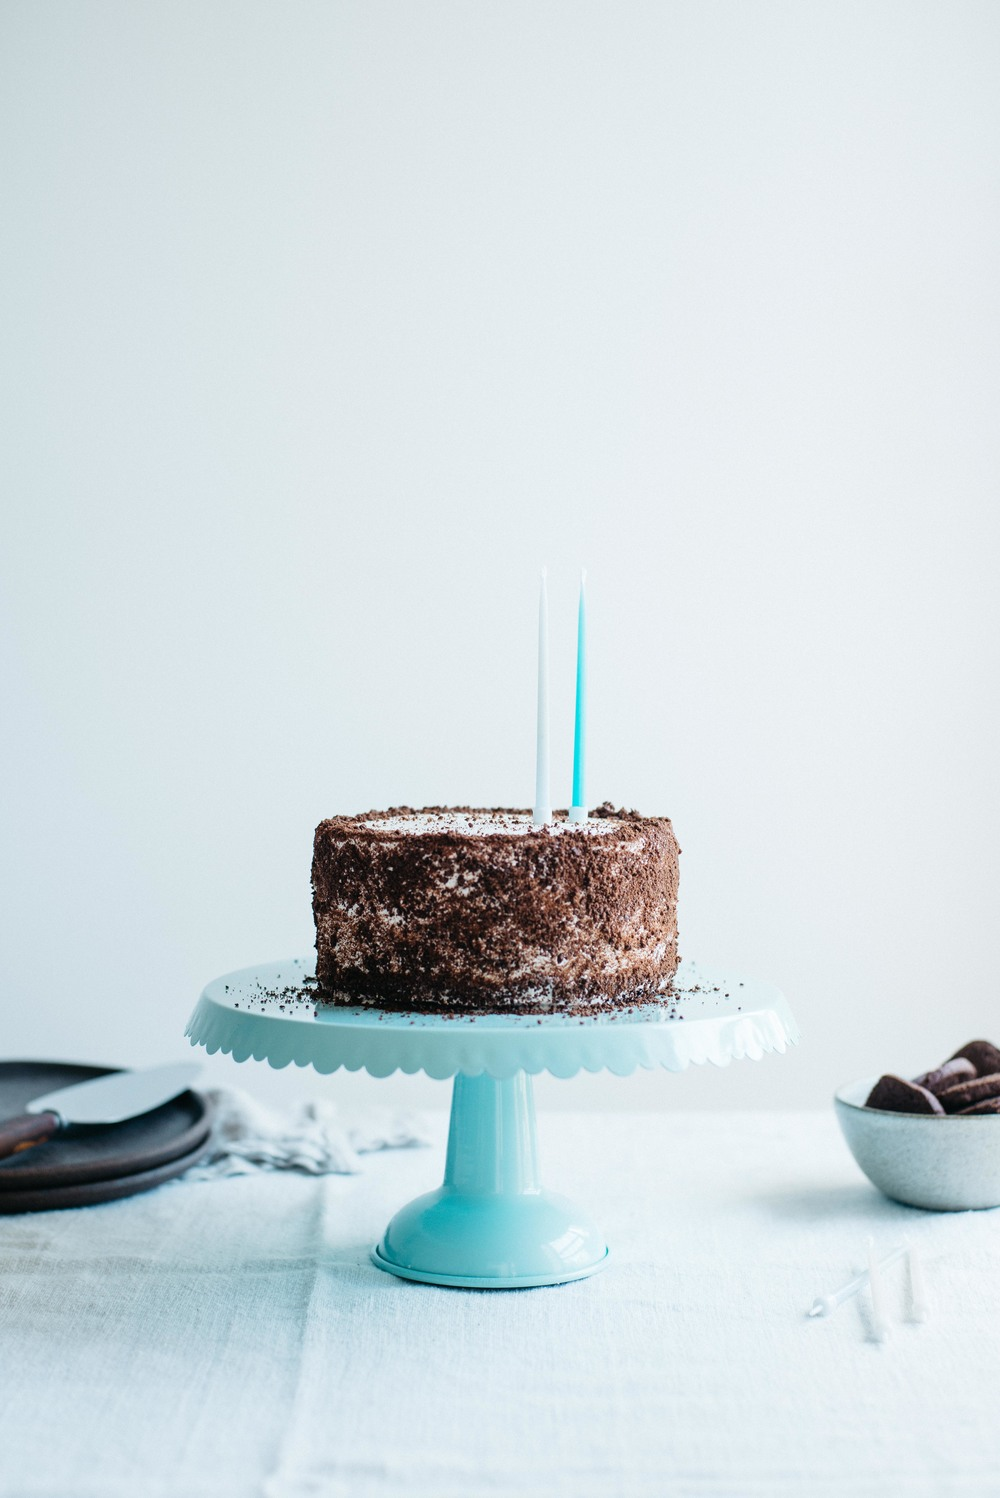 cookies n' cream cake (gf + df) | dolly and oatmeal